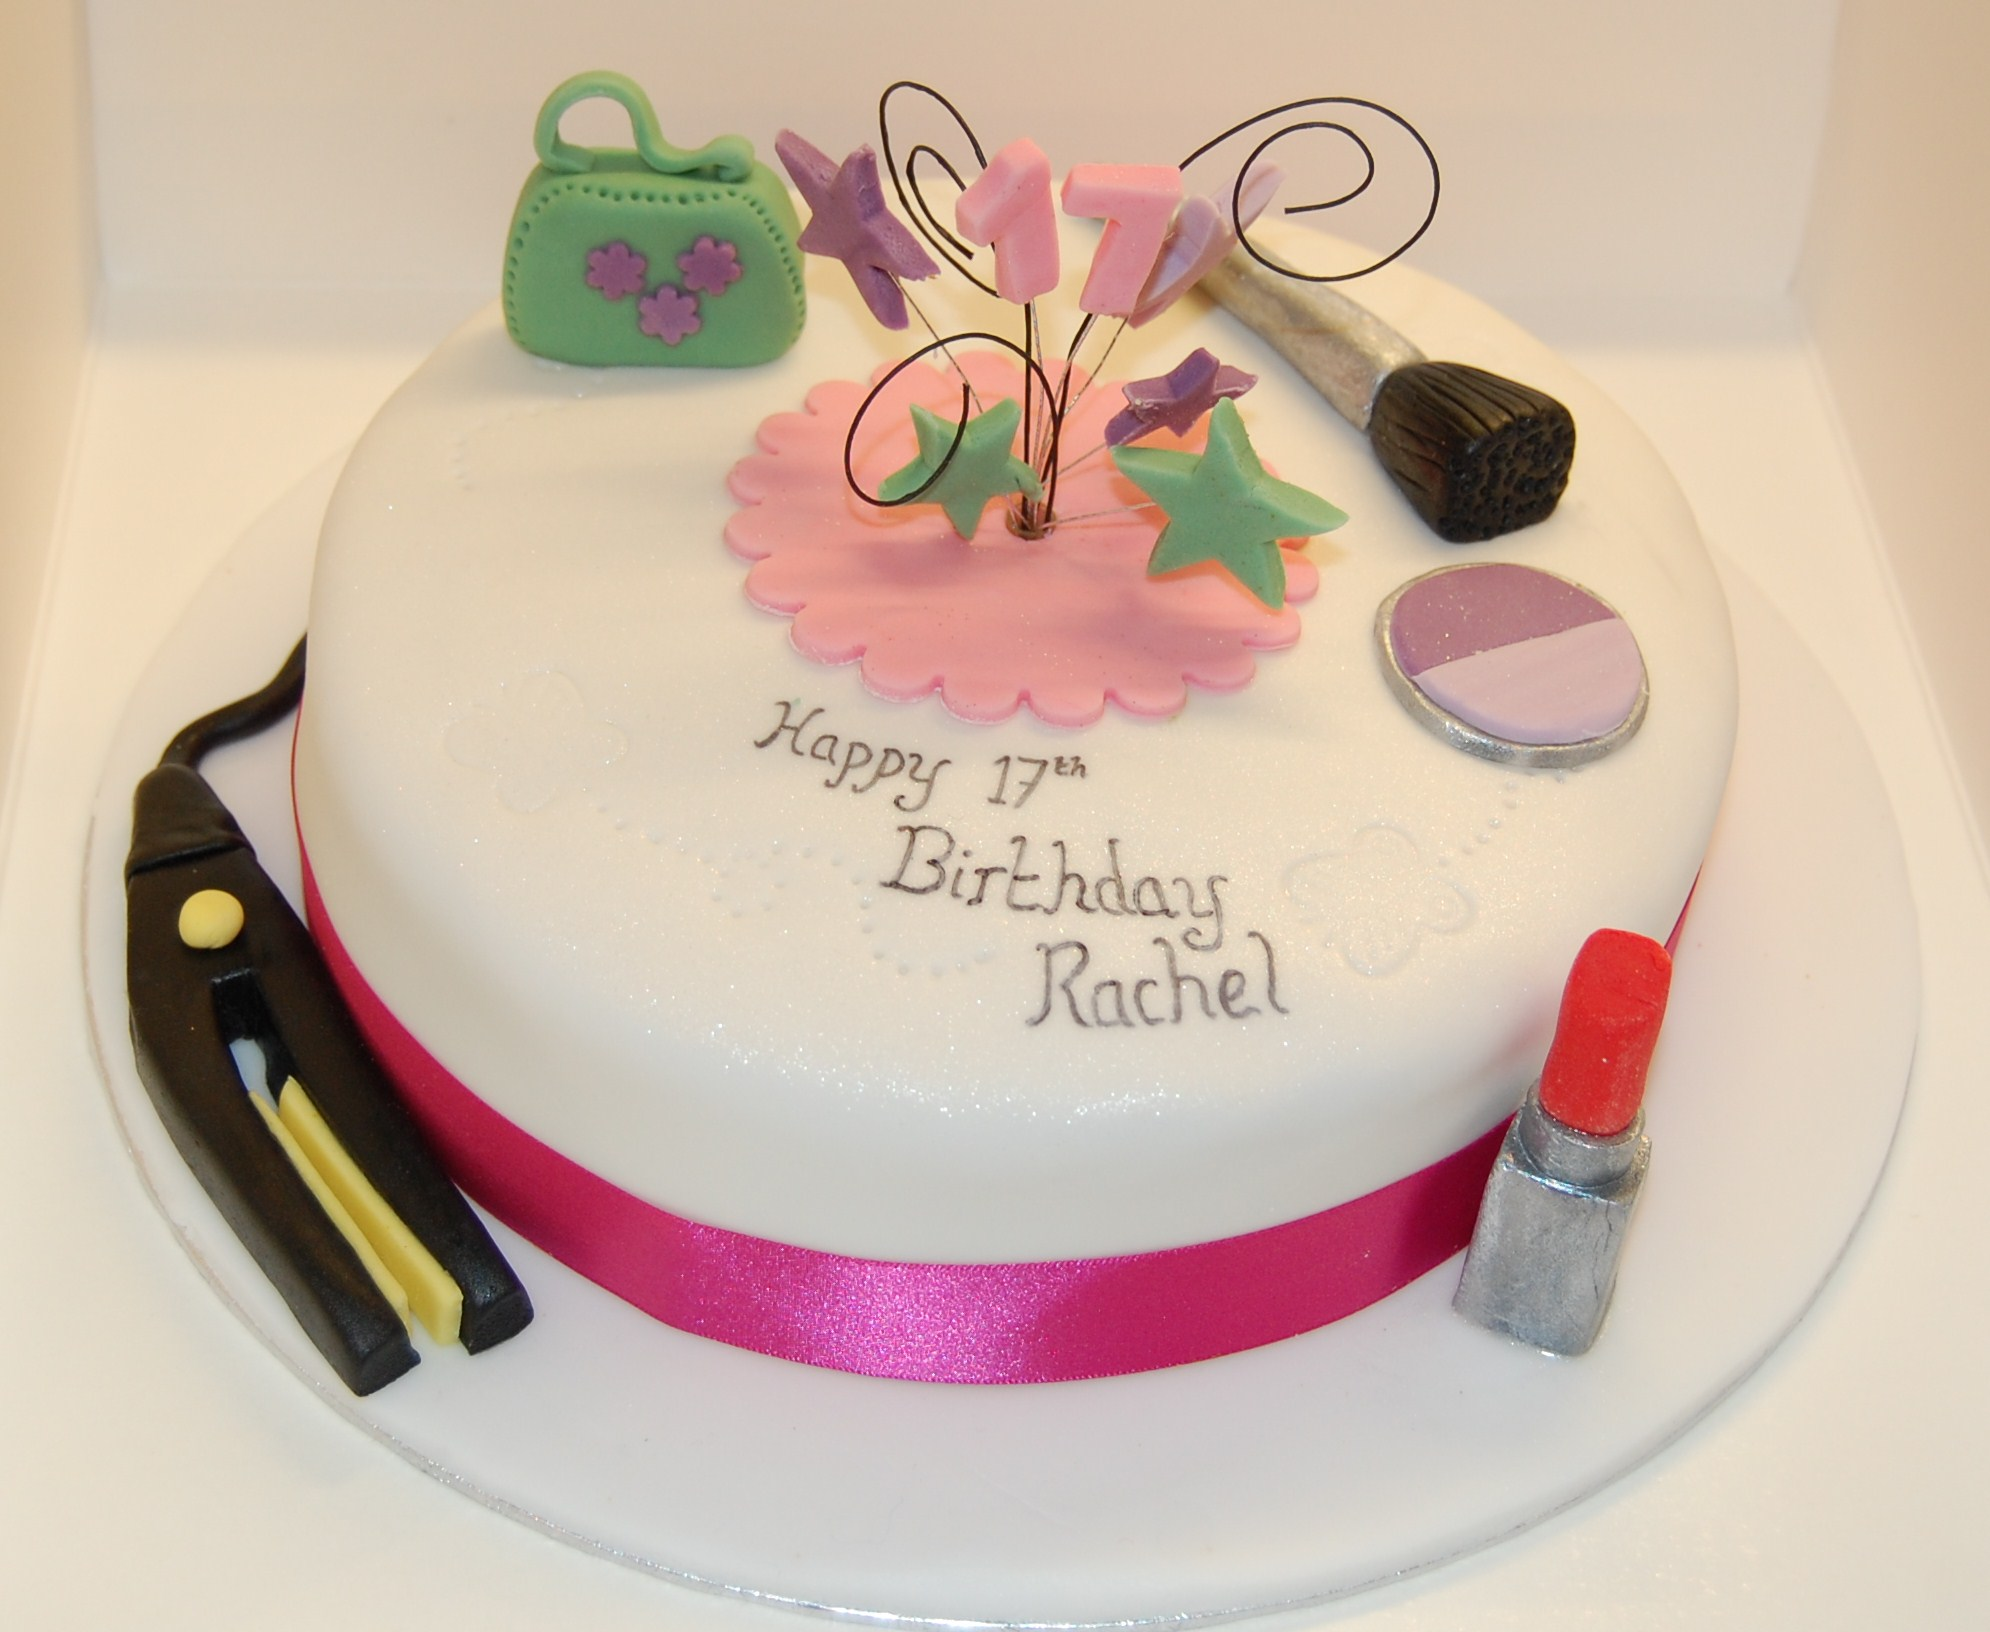 Tremendous Hair And Beauty Cake For The Birthday Girl Turning 17 Hours Of Fun Personalised Birthday Cards Paralily Jamesorg